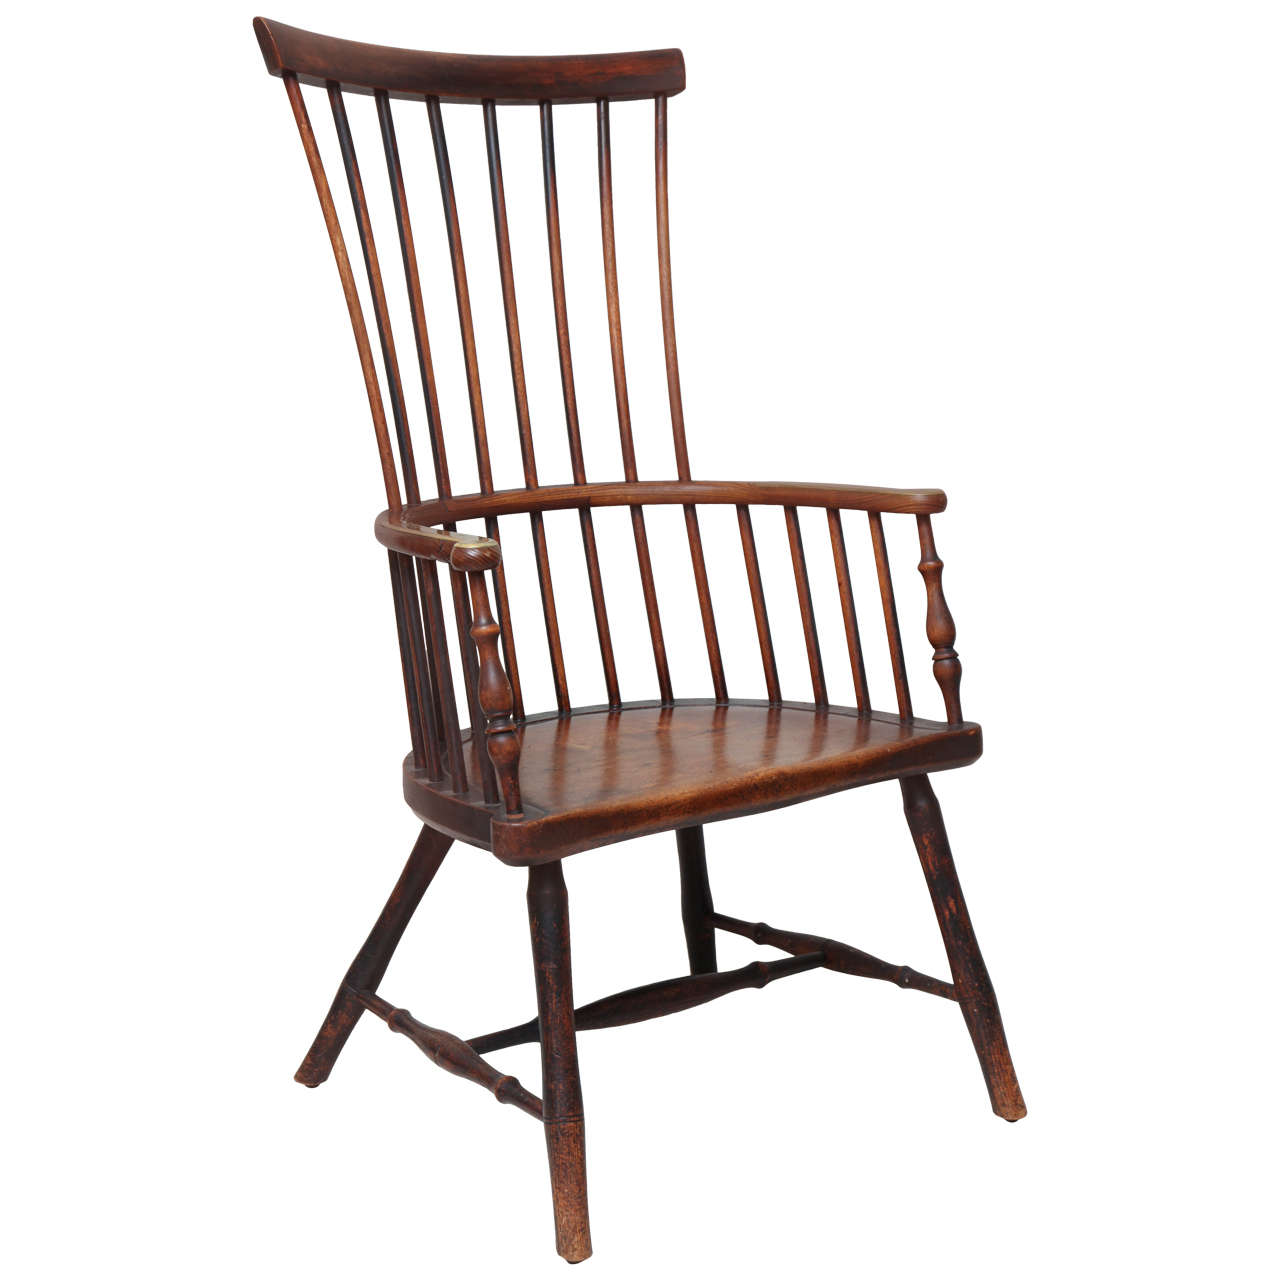 High Quality Early 19th Century Scottish Comb Back Windsor Armchair For Sale